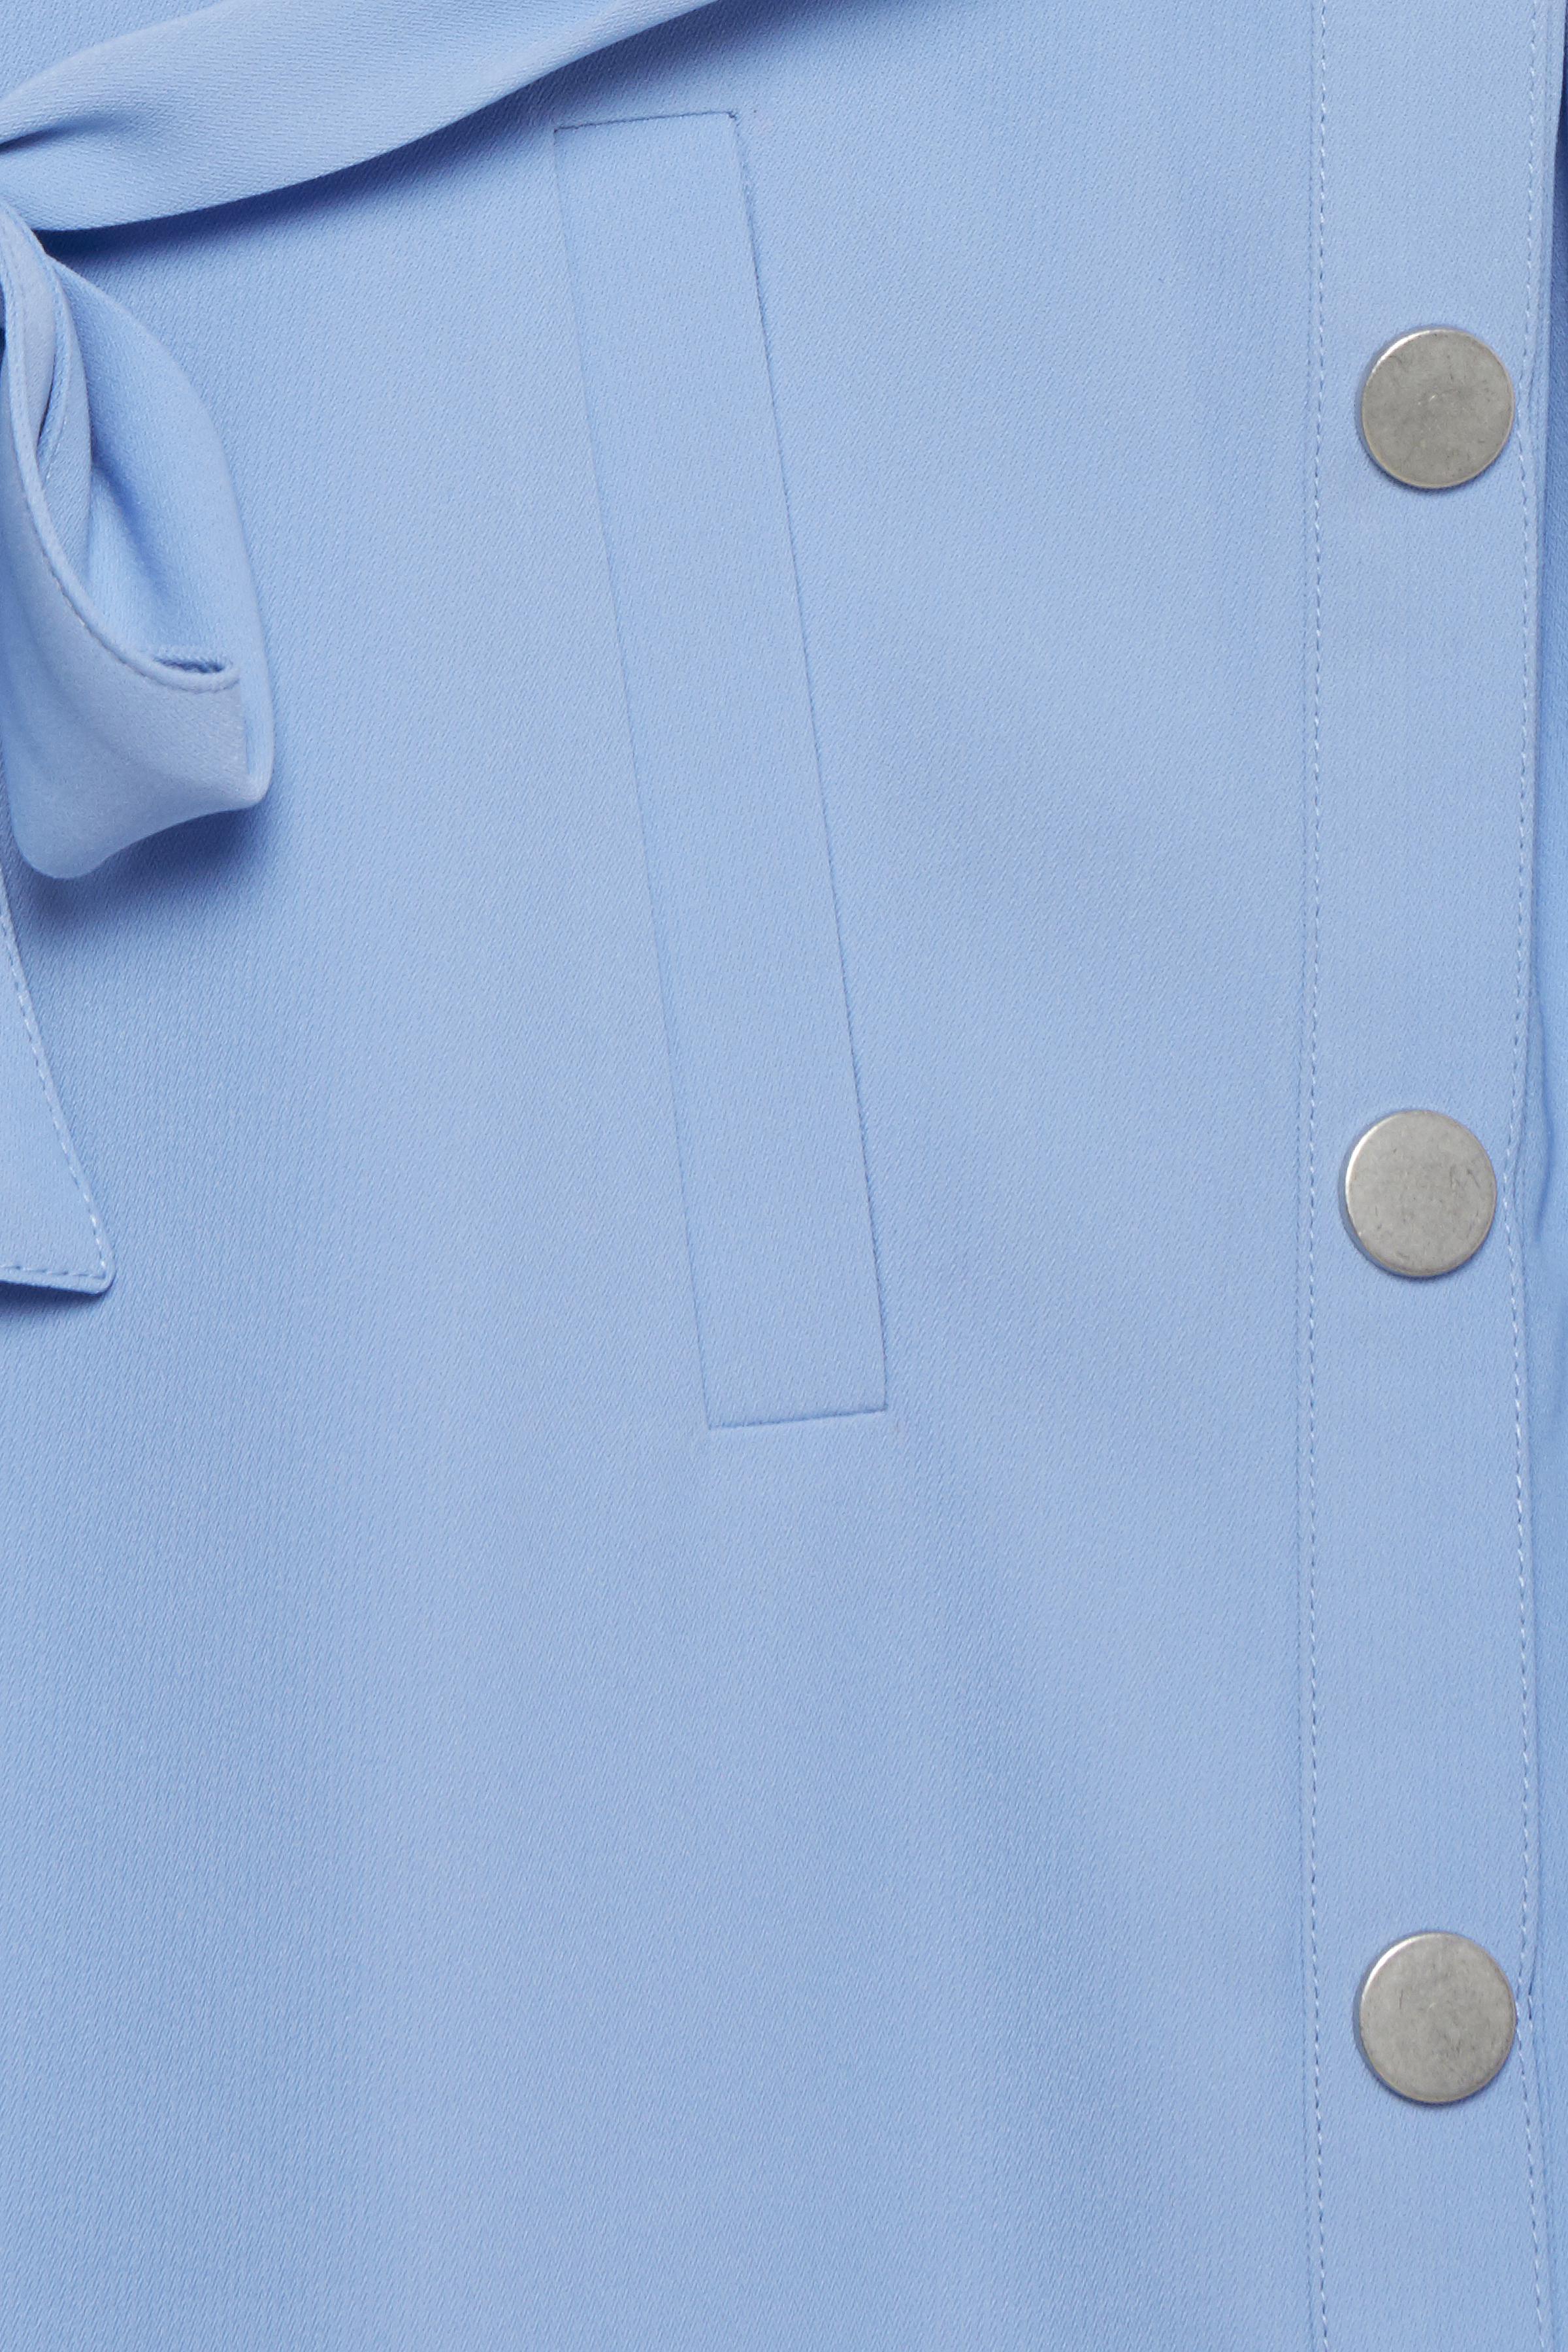 Cornflower Blue Jacket from b.young – Buy Cornflower Blue Jacket from size 34-44 here